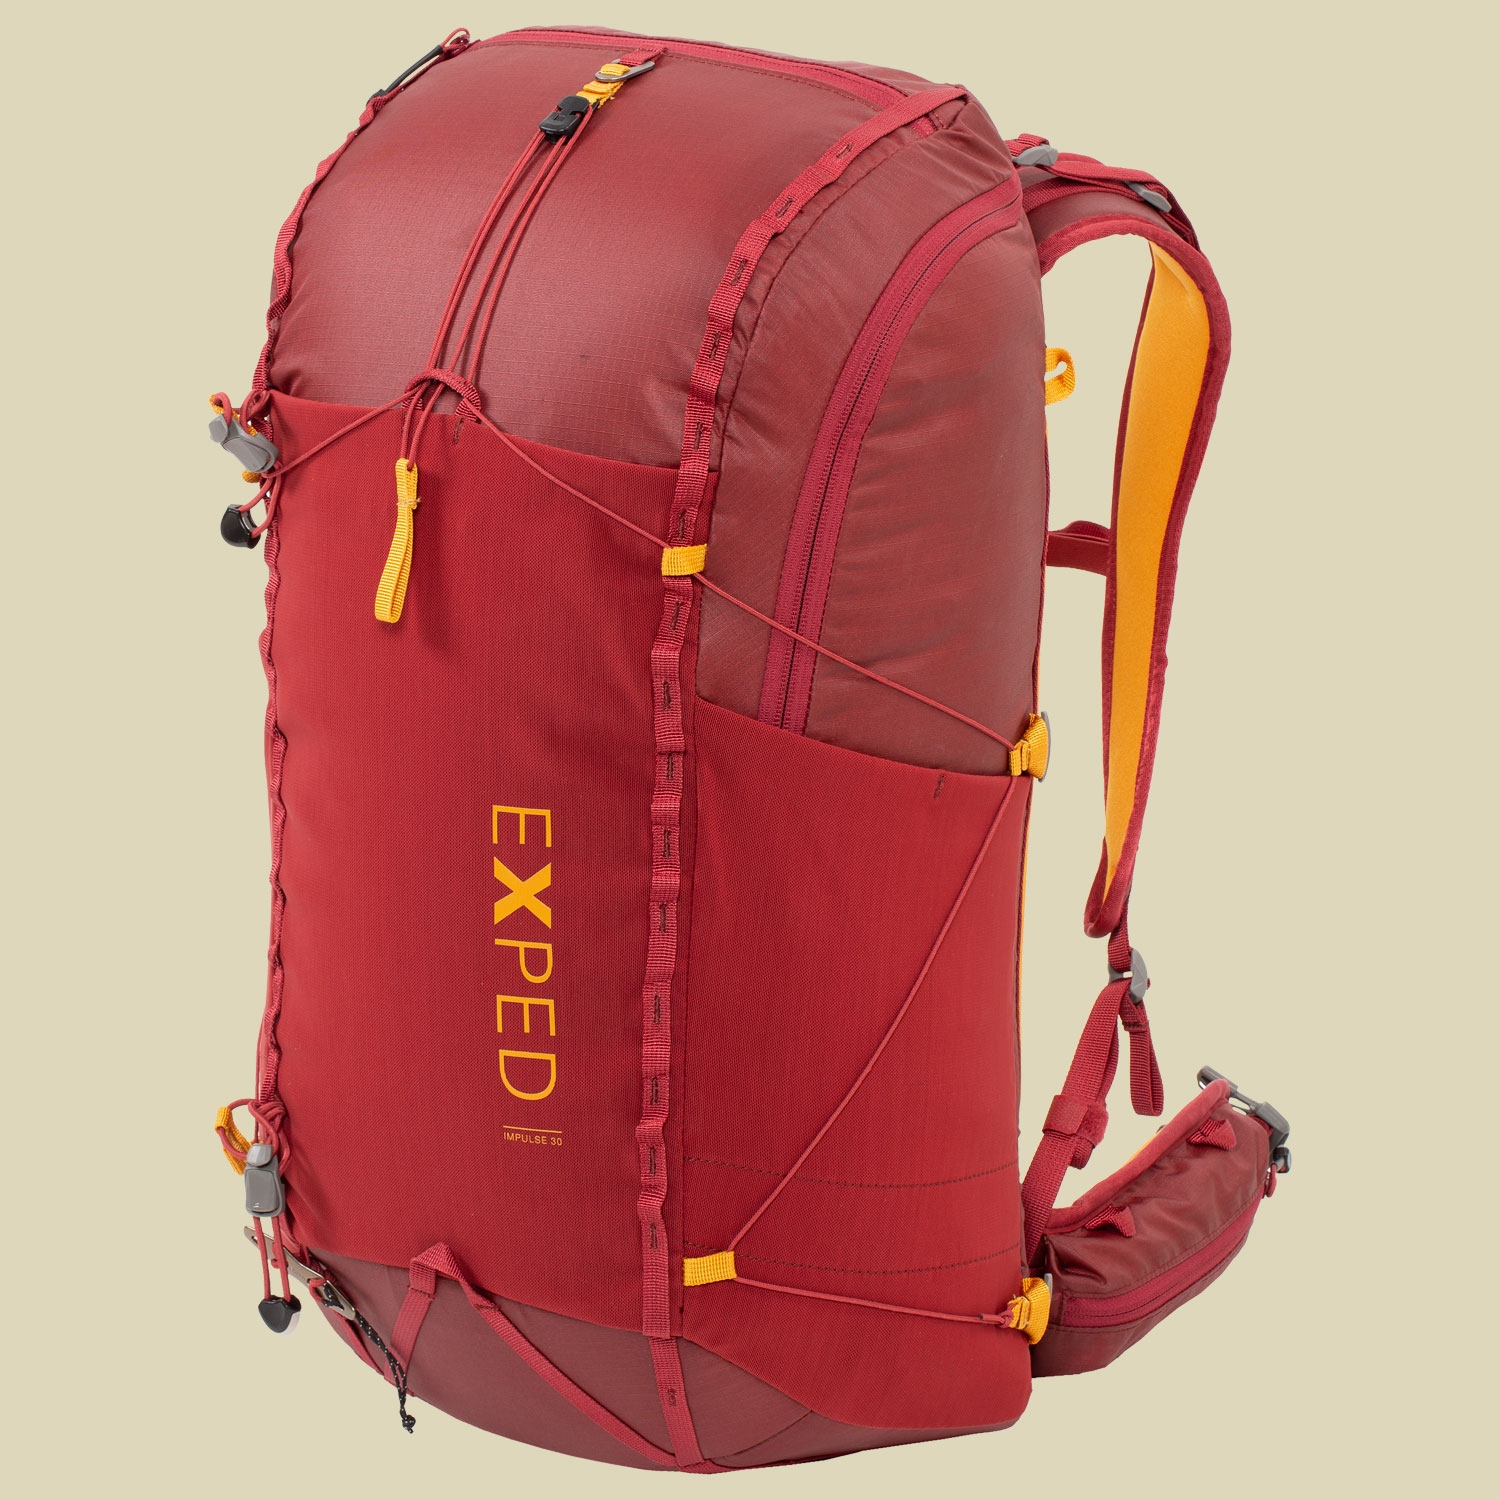 Exped Impulse 30 Wanderrucksack Volumen 30 burgundy von Exped